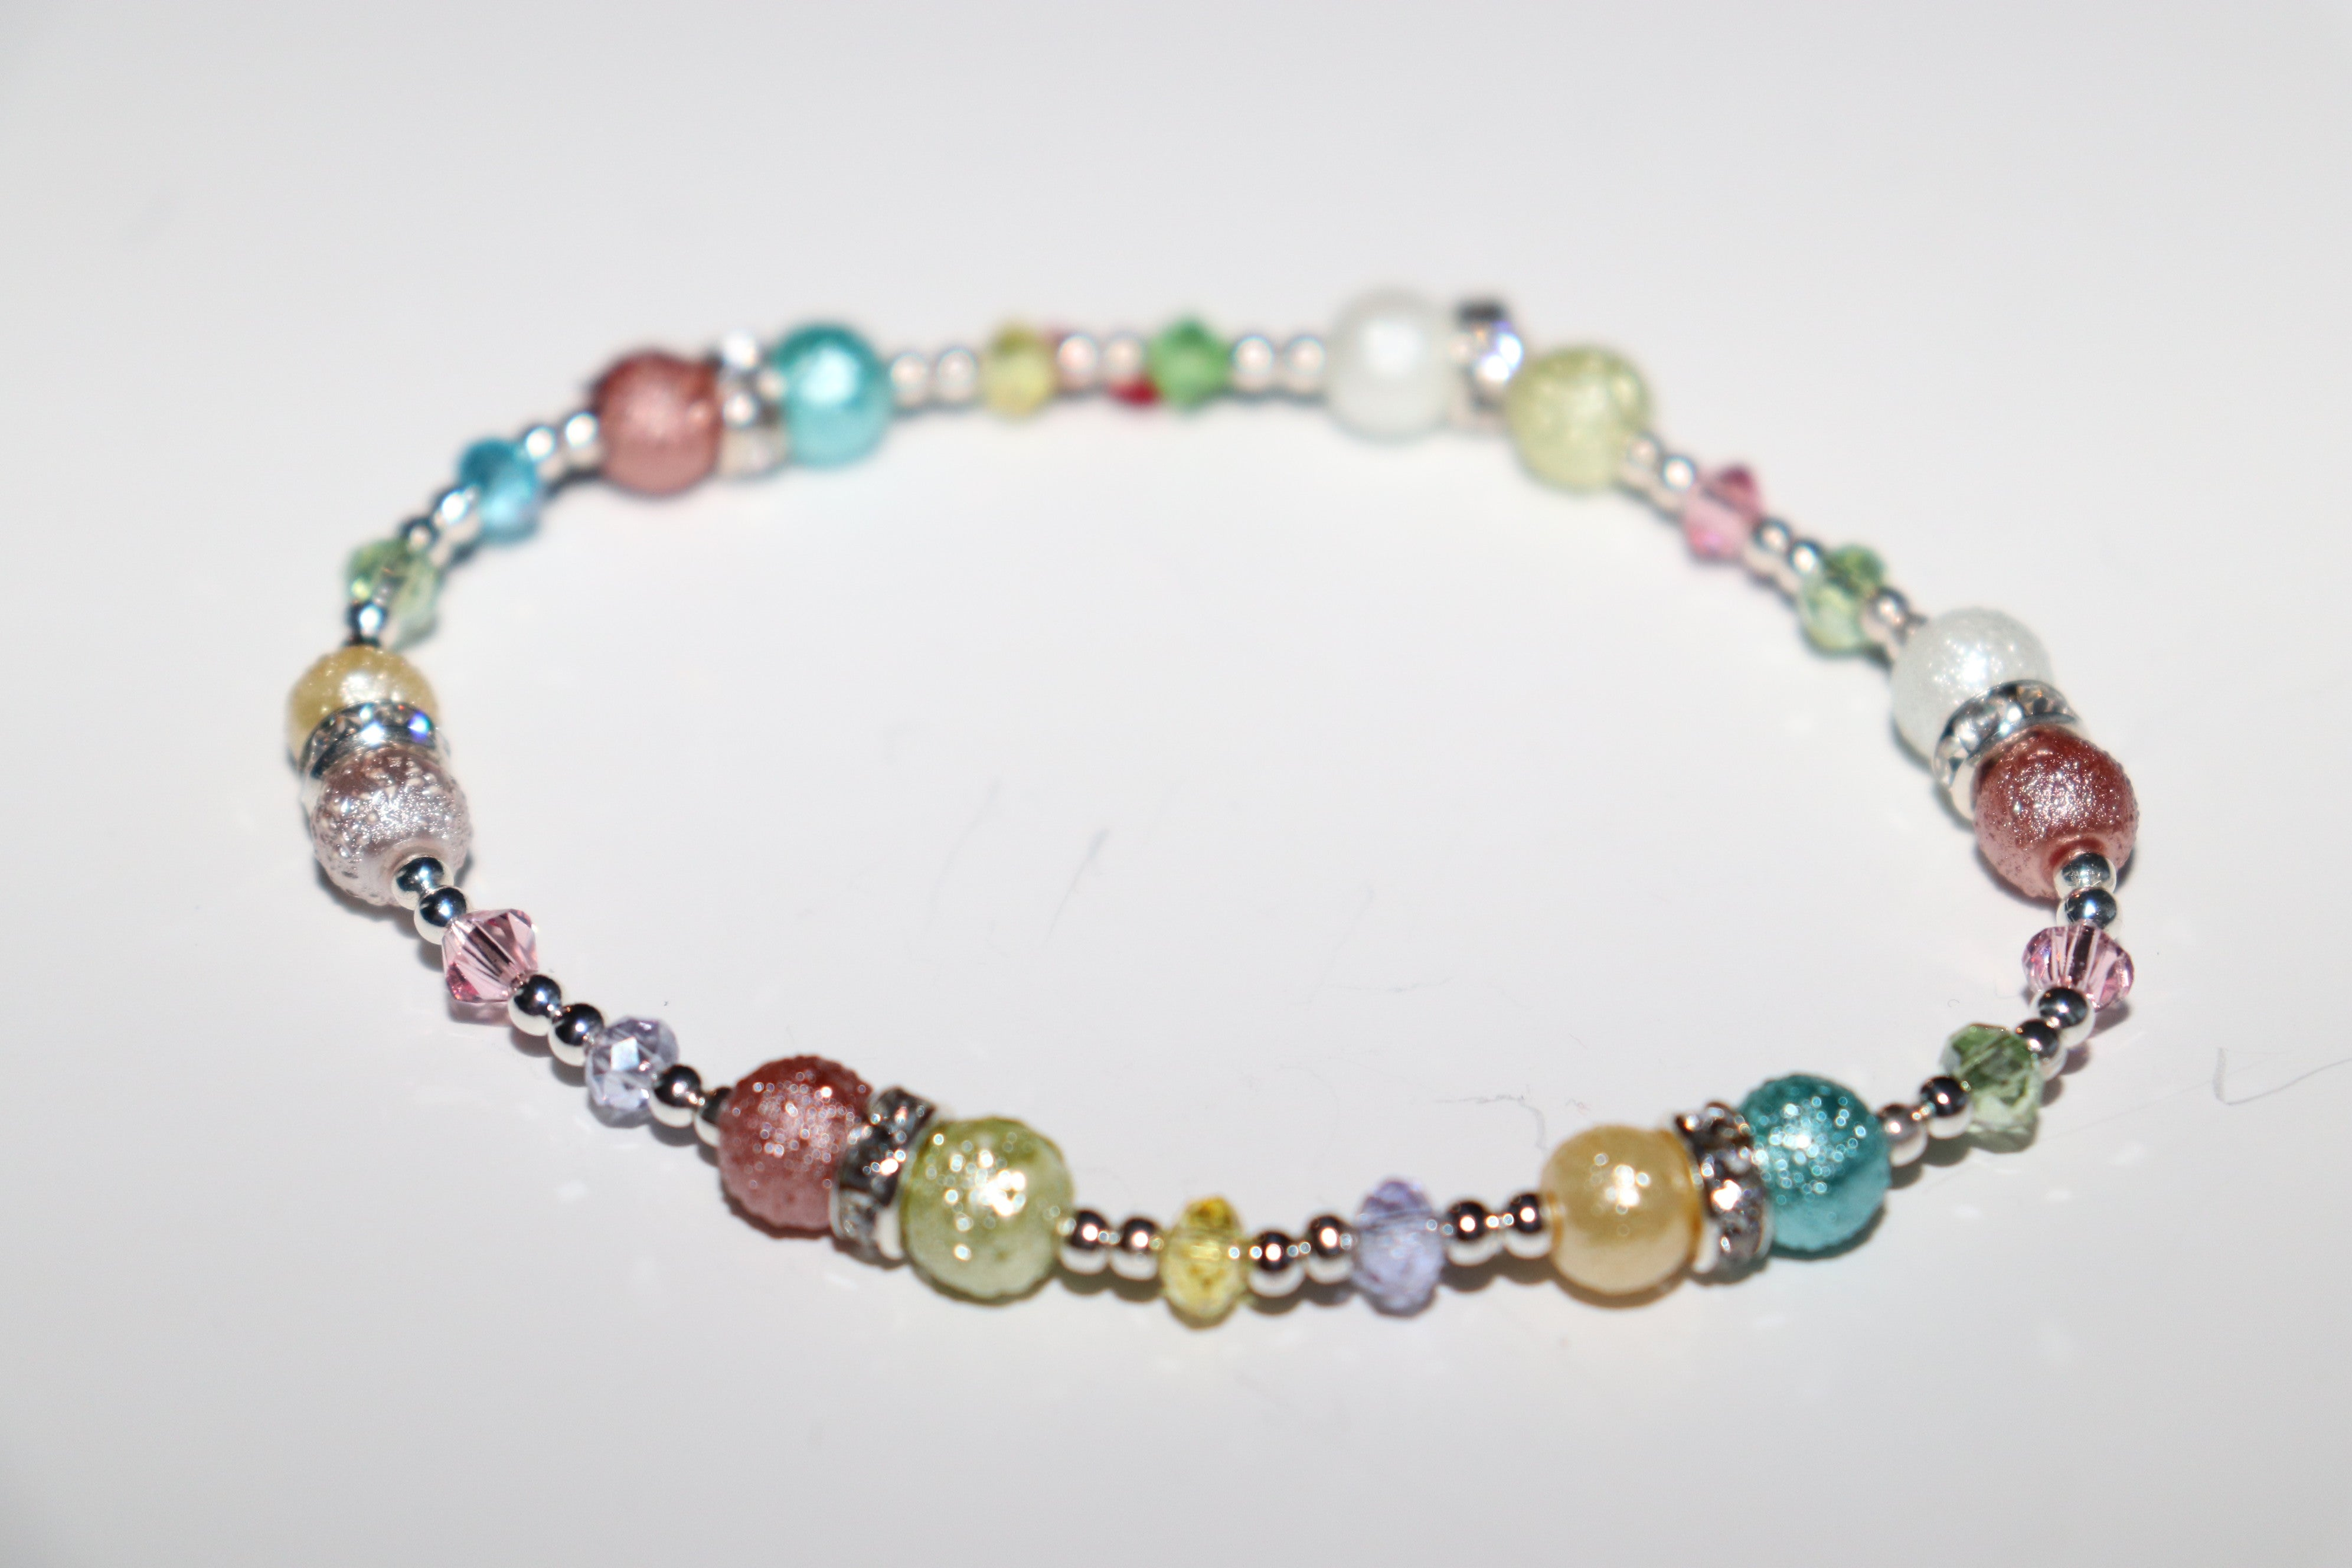 Beautiful Tourmaline and Zircon elastic girls bracelet Fashion 2020, Silver .925